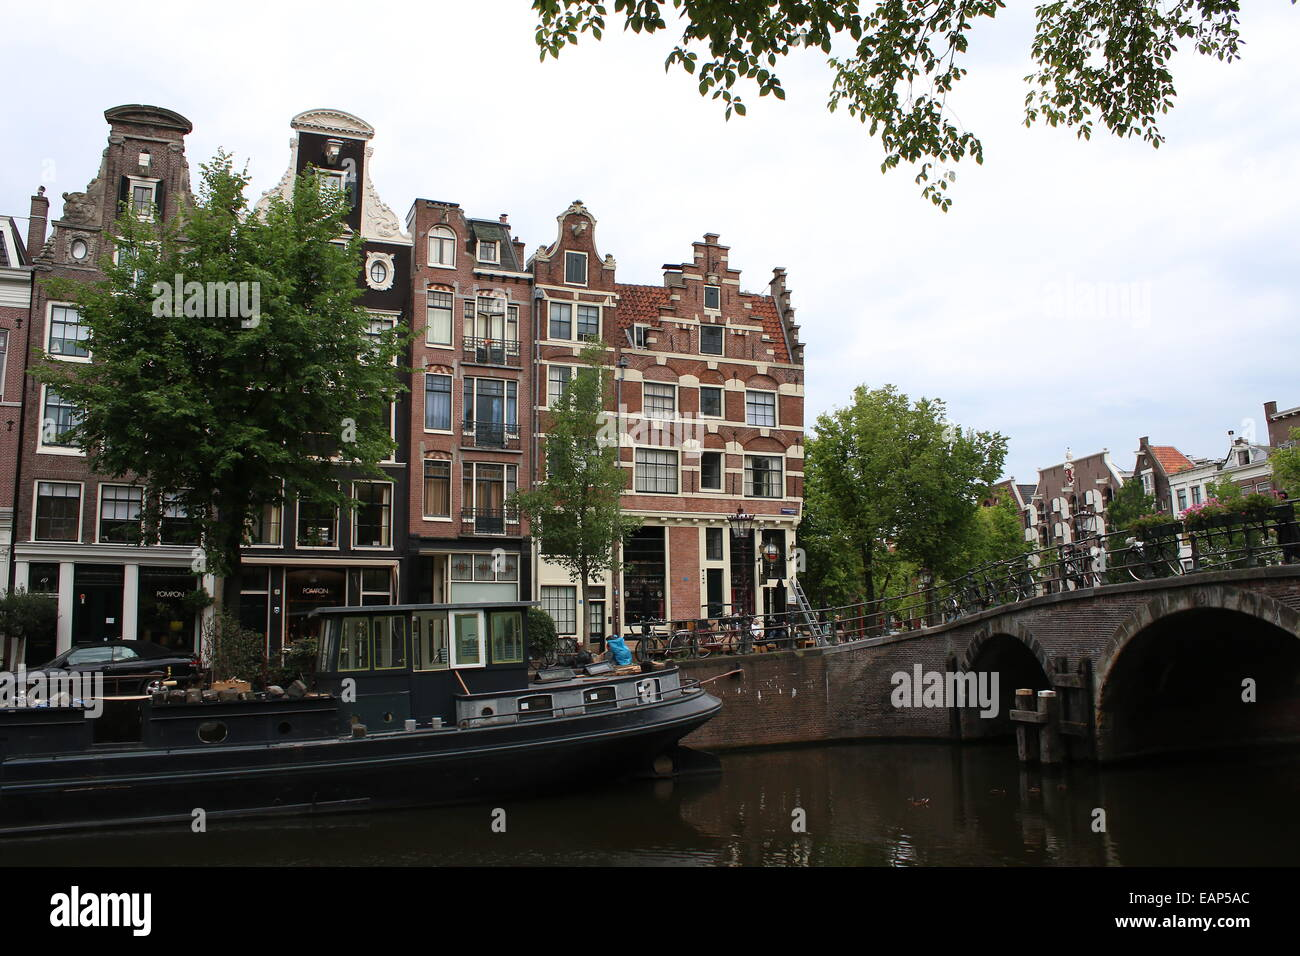 Bridge and old houses where Prinsengracht meets Bouwersgracht canal in Amsterdam, The Netherlands - Stock Image